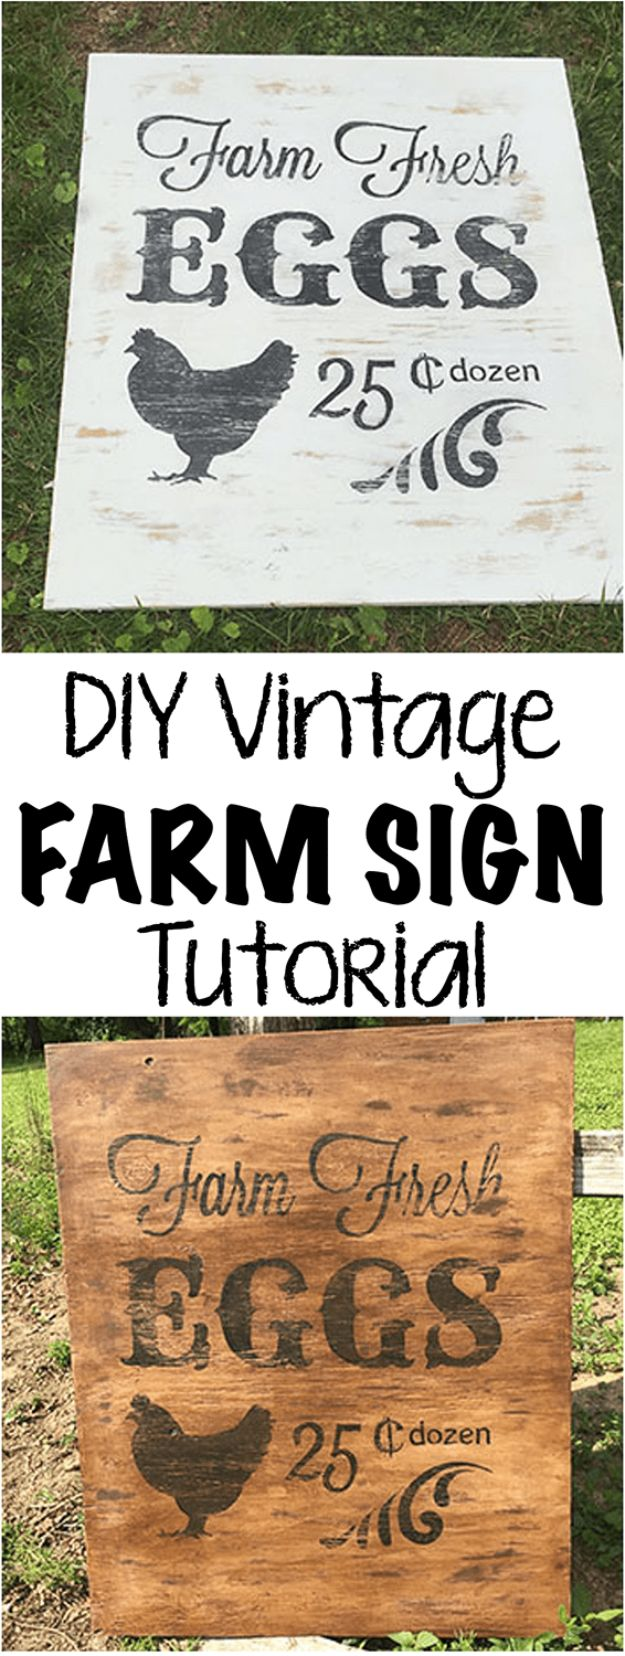 DIY Vintage Signs - DIY Vintage Farm Sign - Rustic, Vintage Sign Projects to Make At Home - Creative Home Decor on a Budget and Cheap Crafts for Living Room, Bedroom and Kitchen - Paint Letters, Transfer to Wood, Aged Finishes and Fun Word Stencils and Easy Ideas for Farmhouse Wall Art http://diyjoy.com/diy-vintage-signs